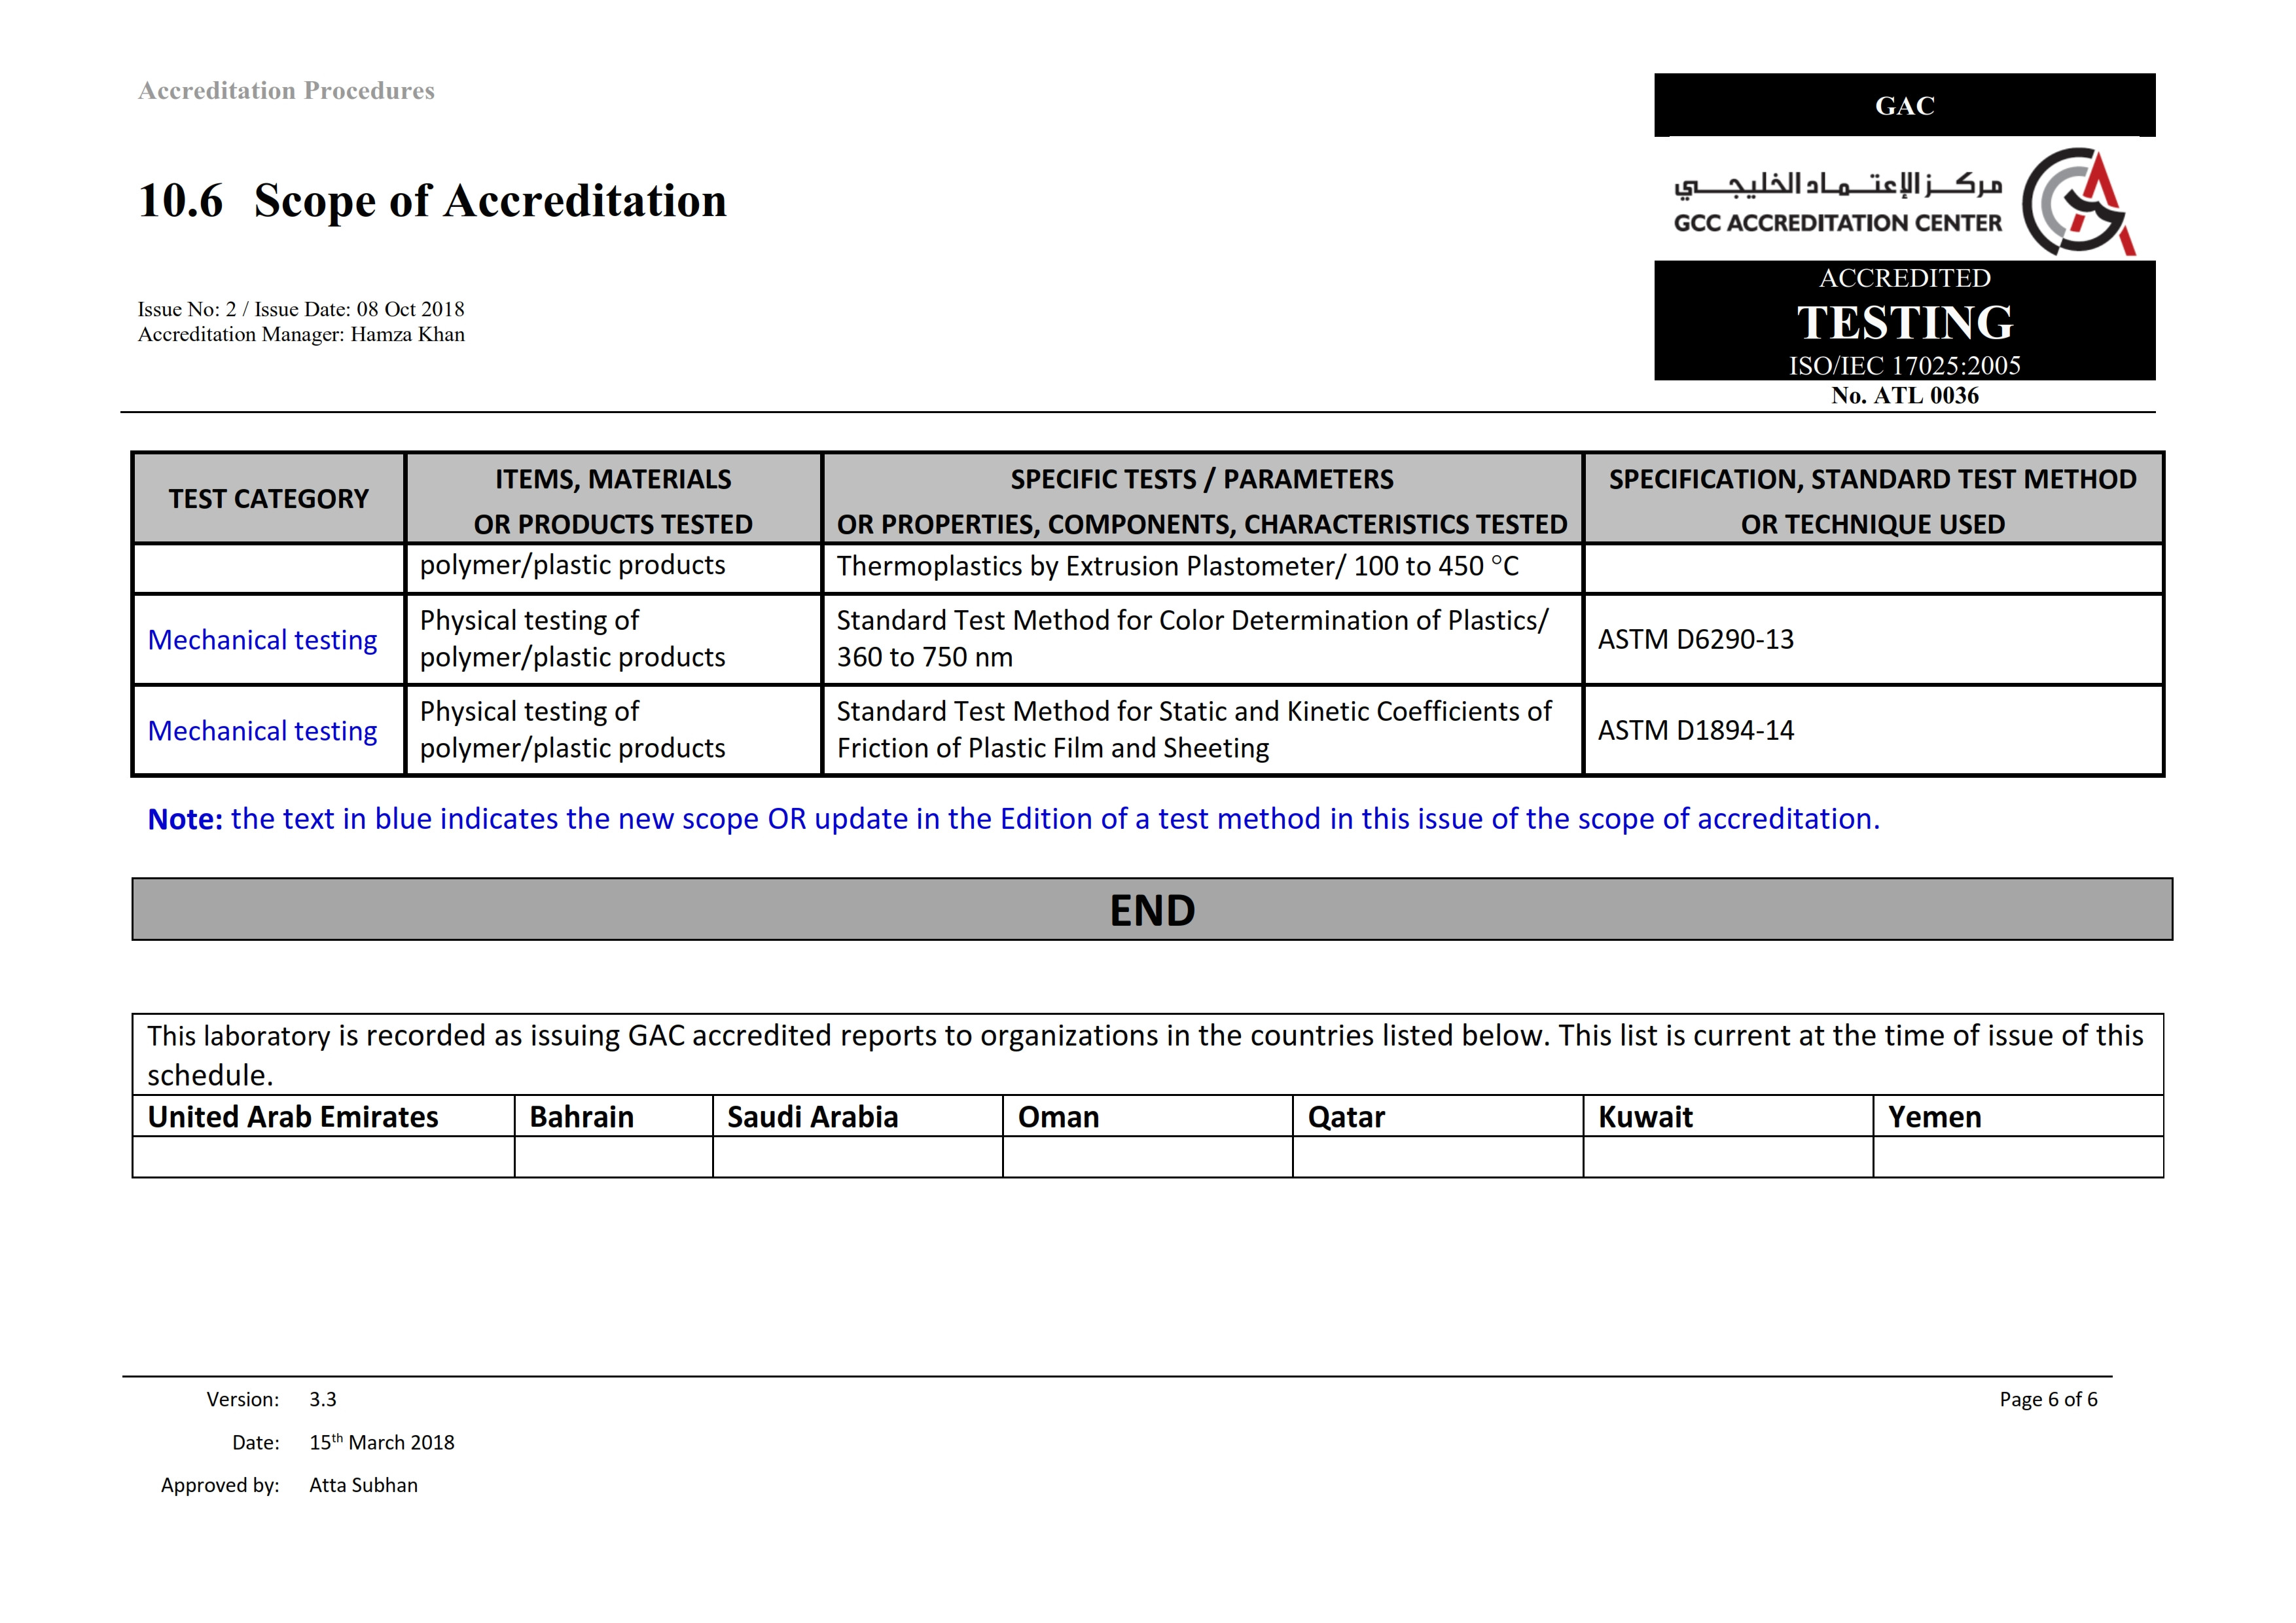 GAC 10.6 Scope of Accreditation- v.3.3 -Testing - EnerPlastic LLC_006